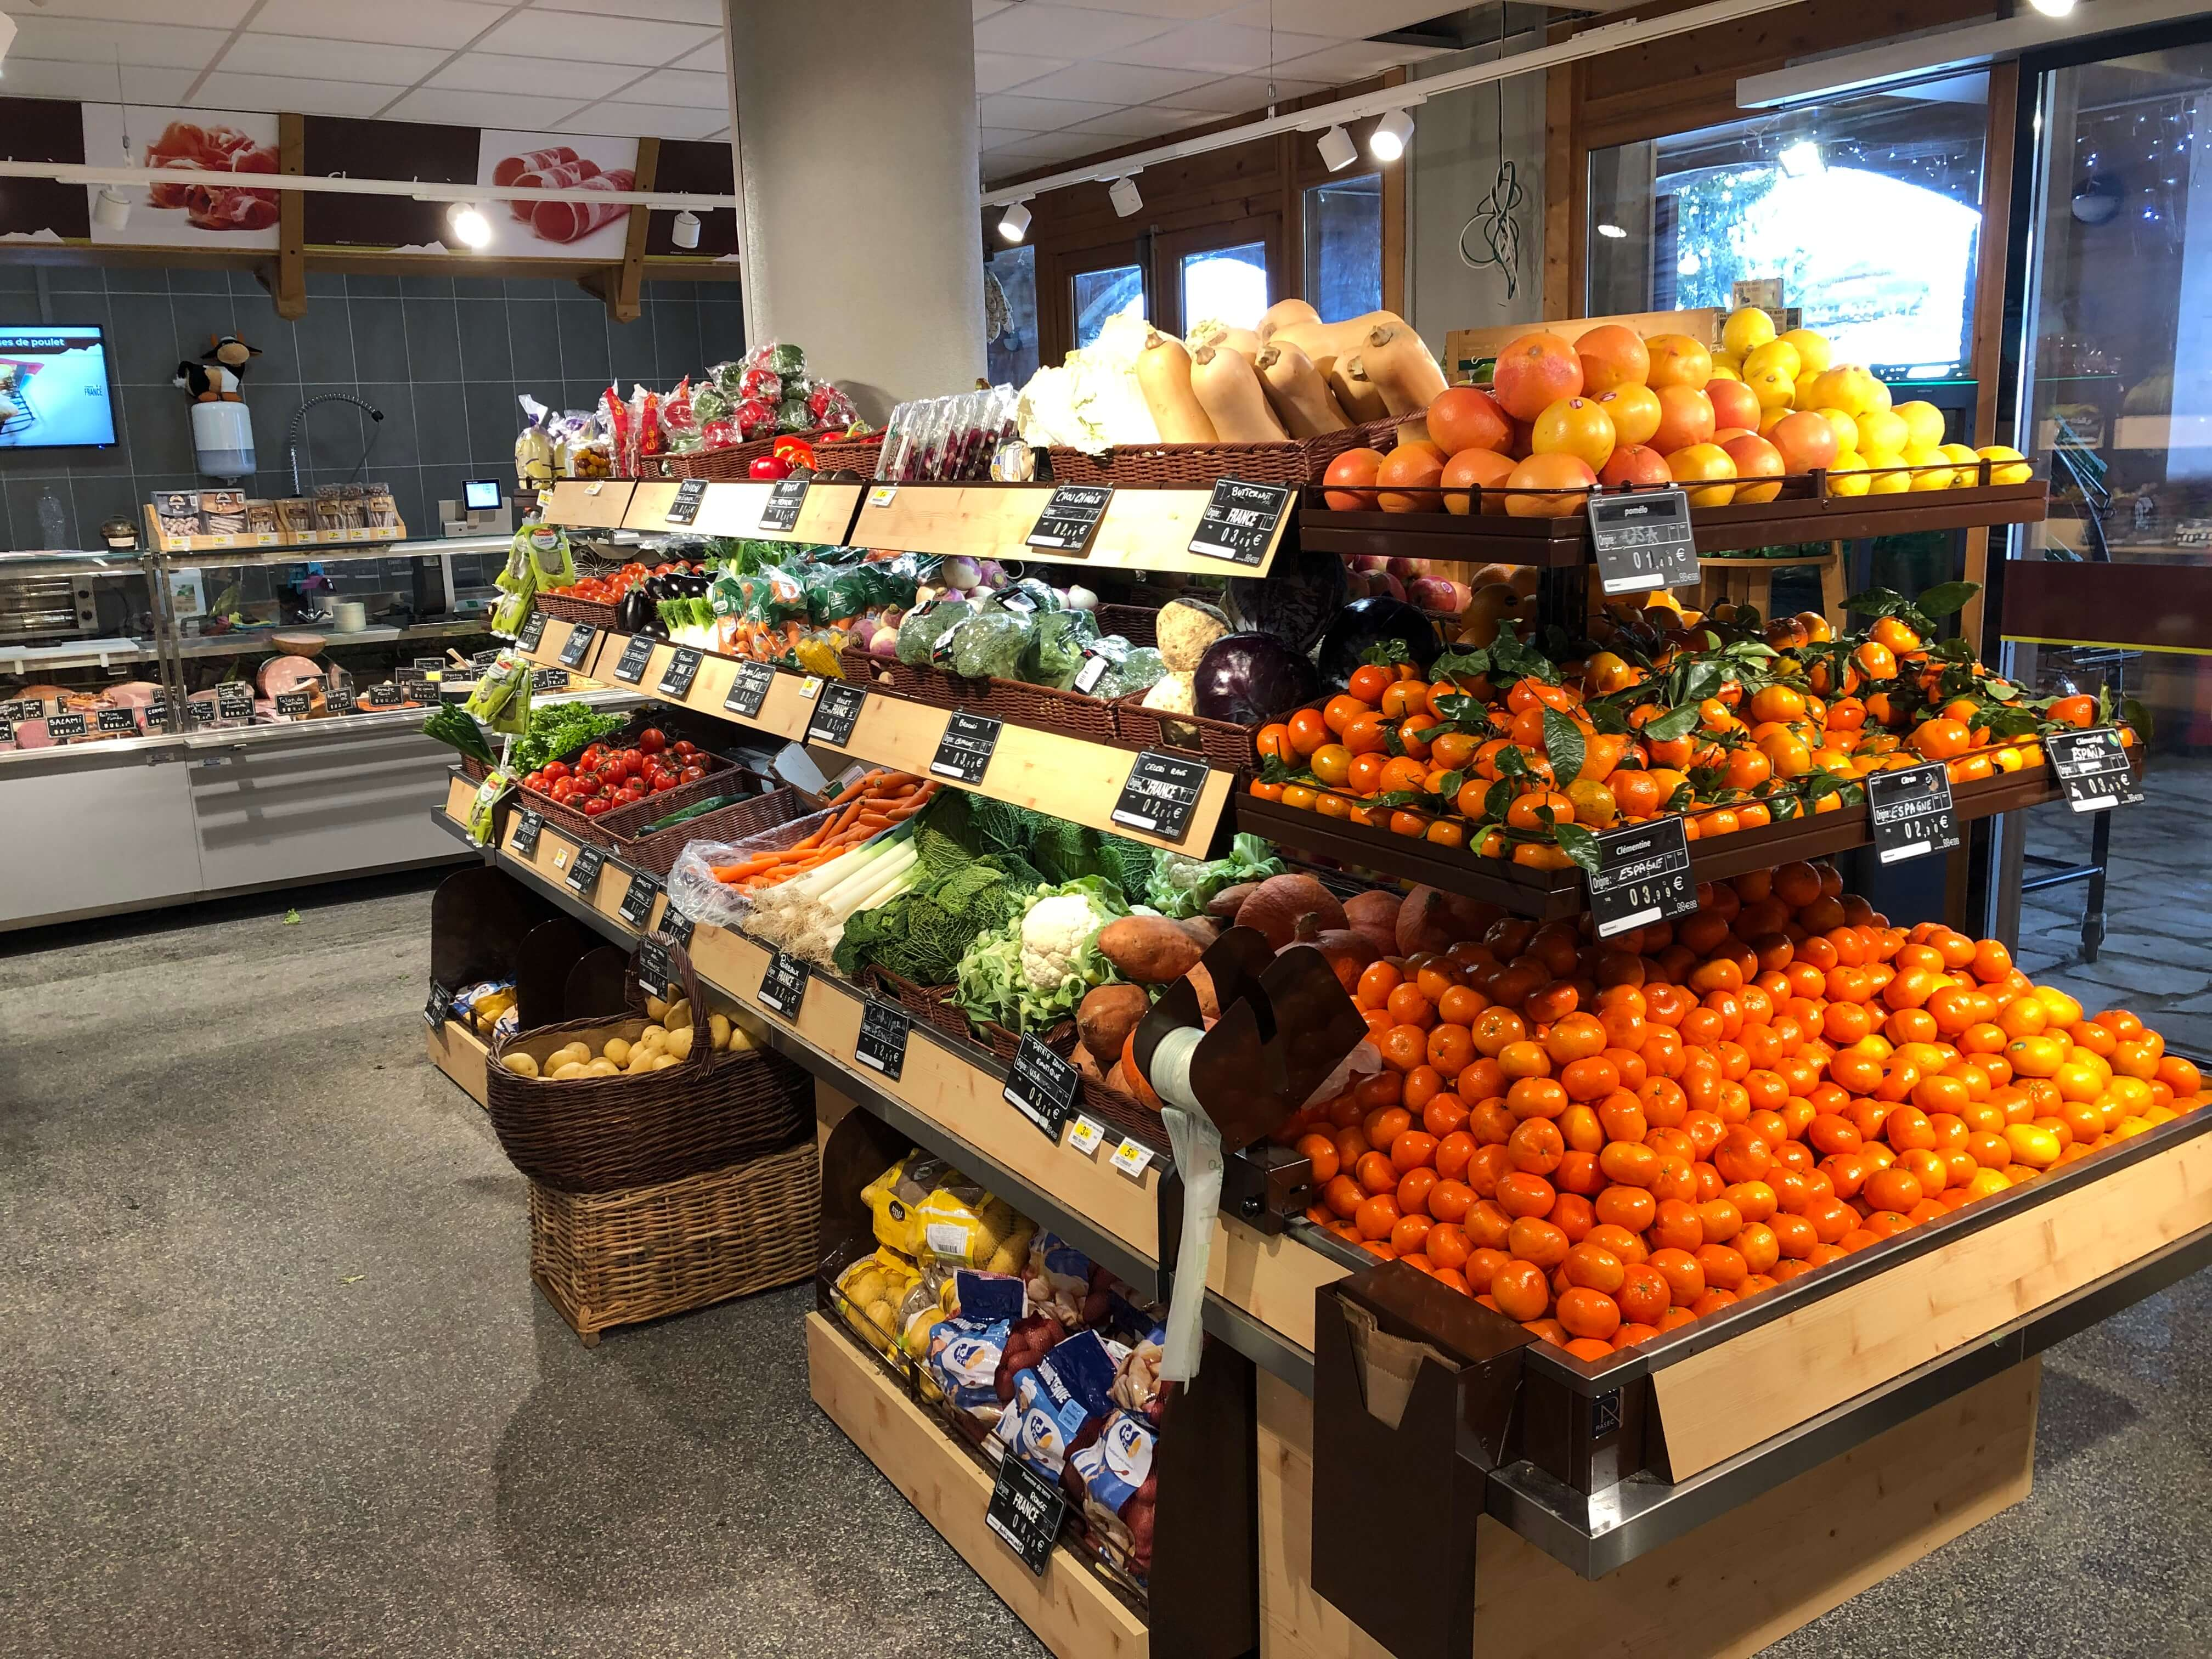 Sherpa supermarket Grand Bornand (Le) - Chinaillon fruits and vegetables